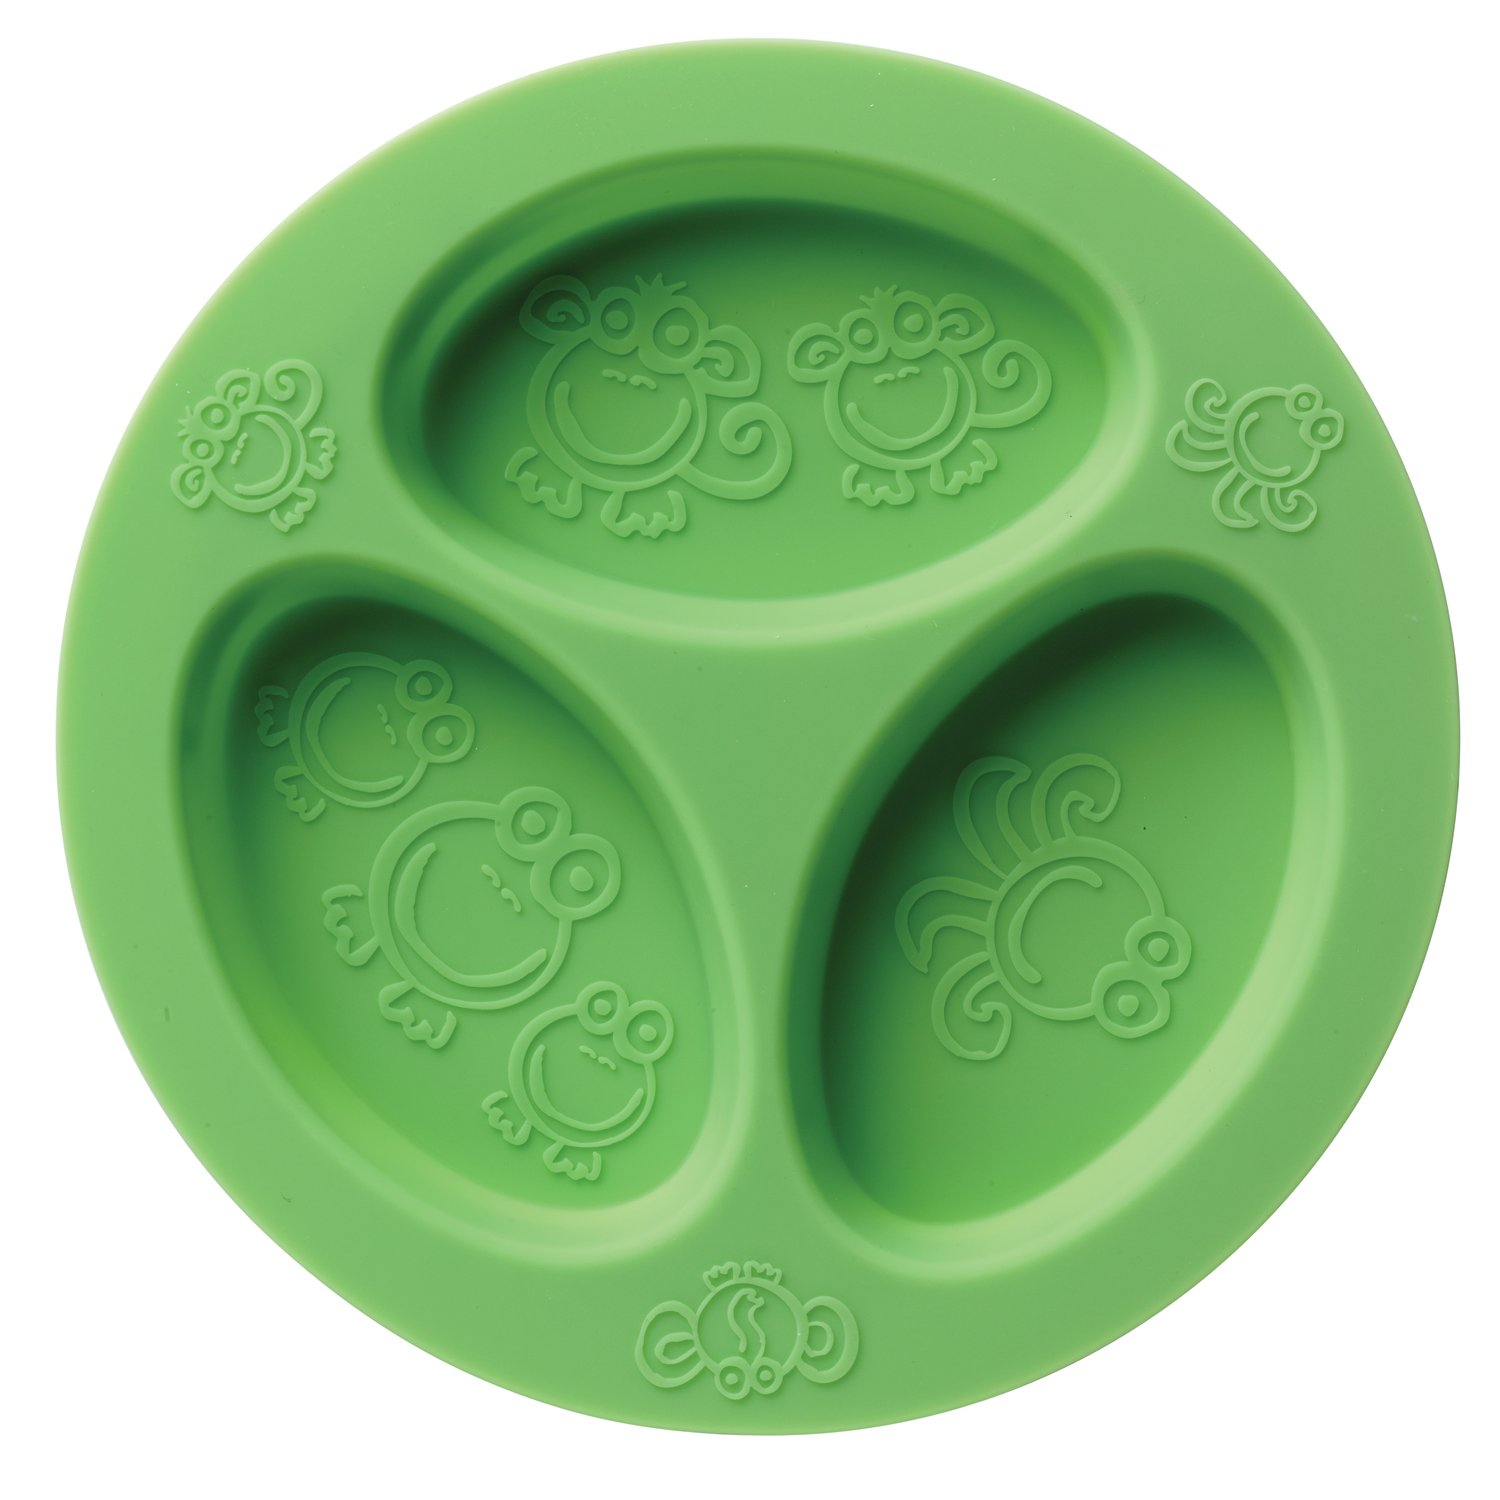 oogaa Silicone Baby and Toddler Divided Plate - Green by oogaa   B00IK1LFB4